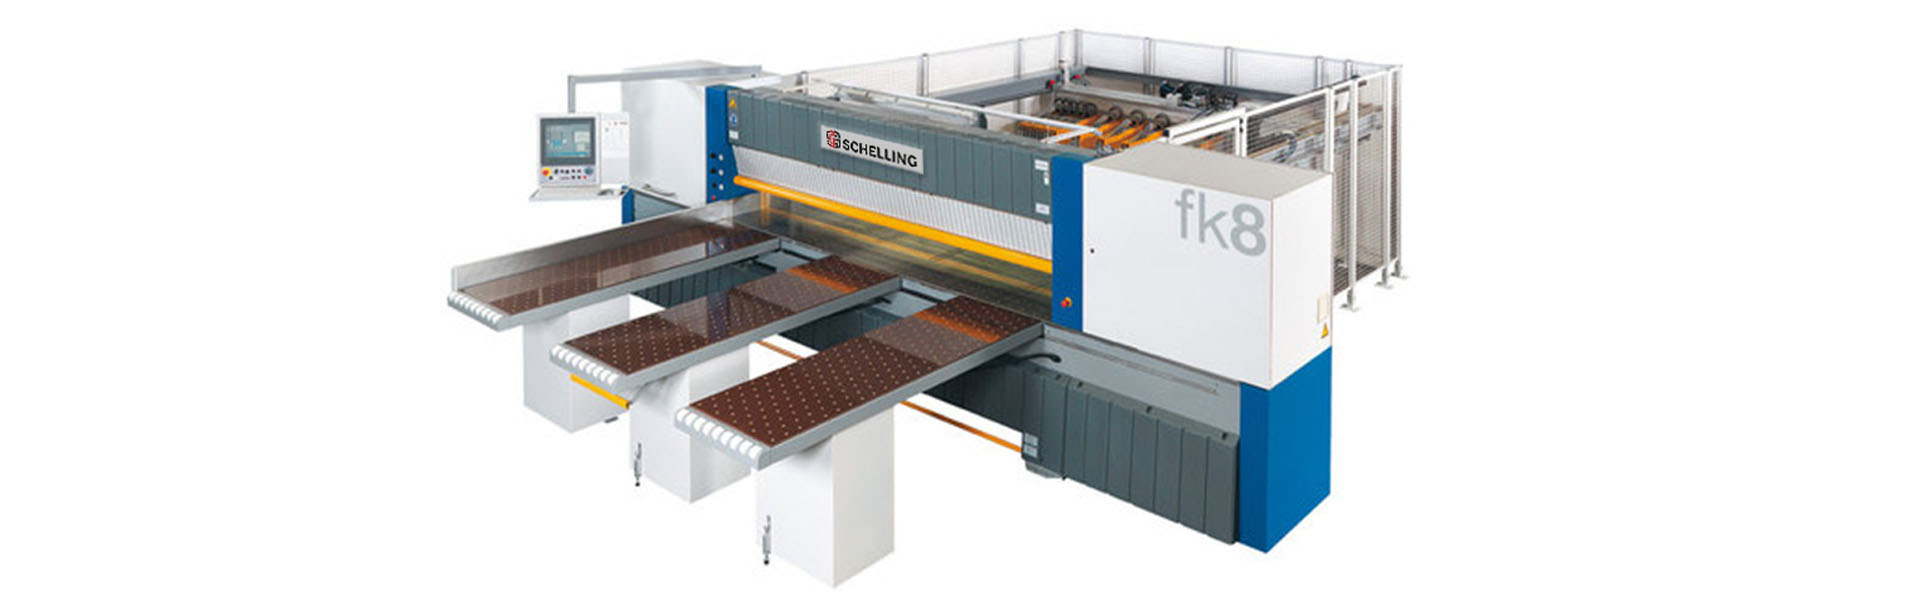 Schelling fk8 Plastic and Composite Panel Saw